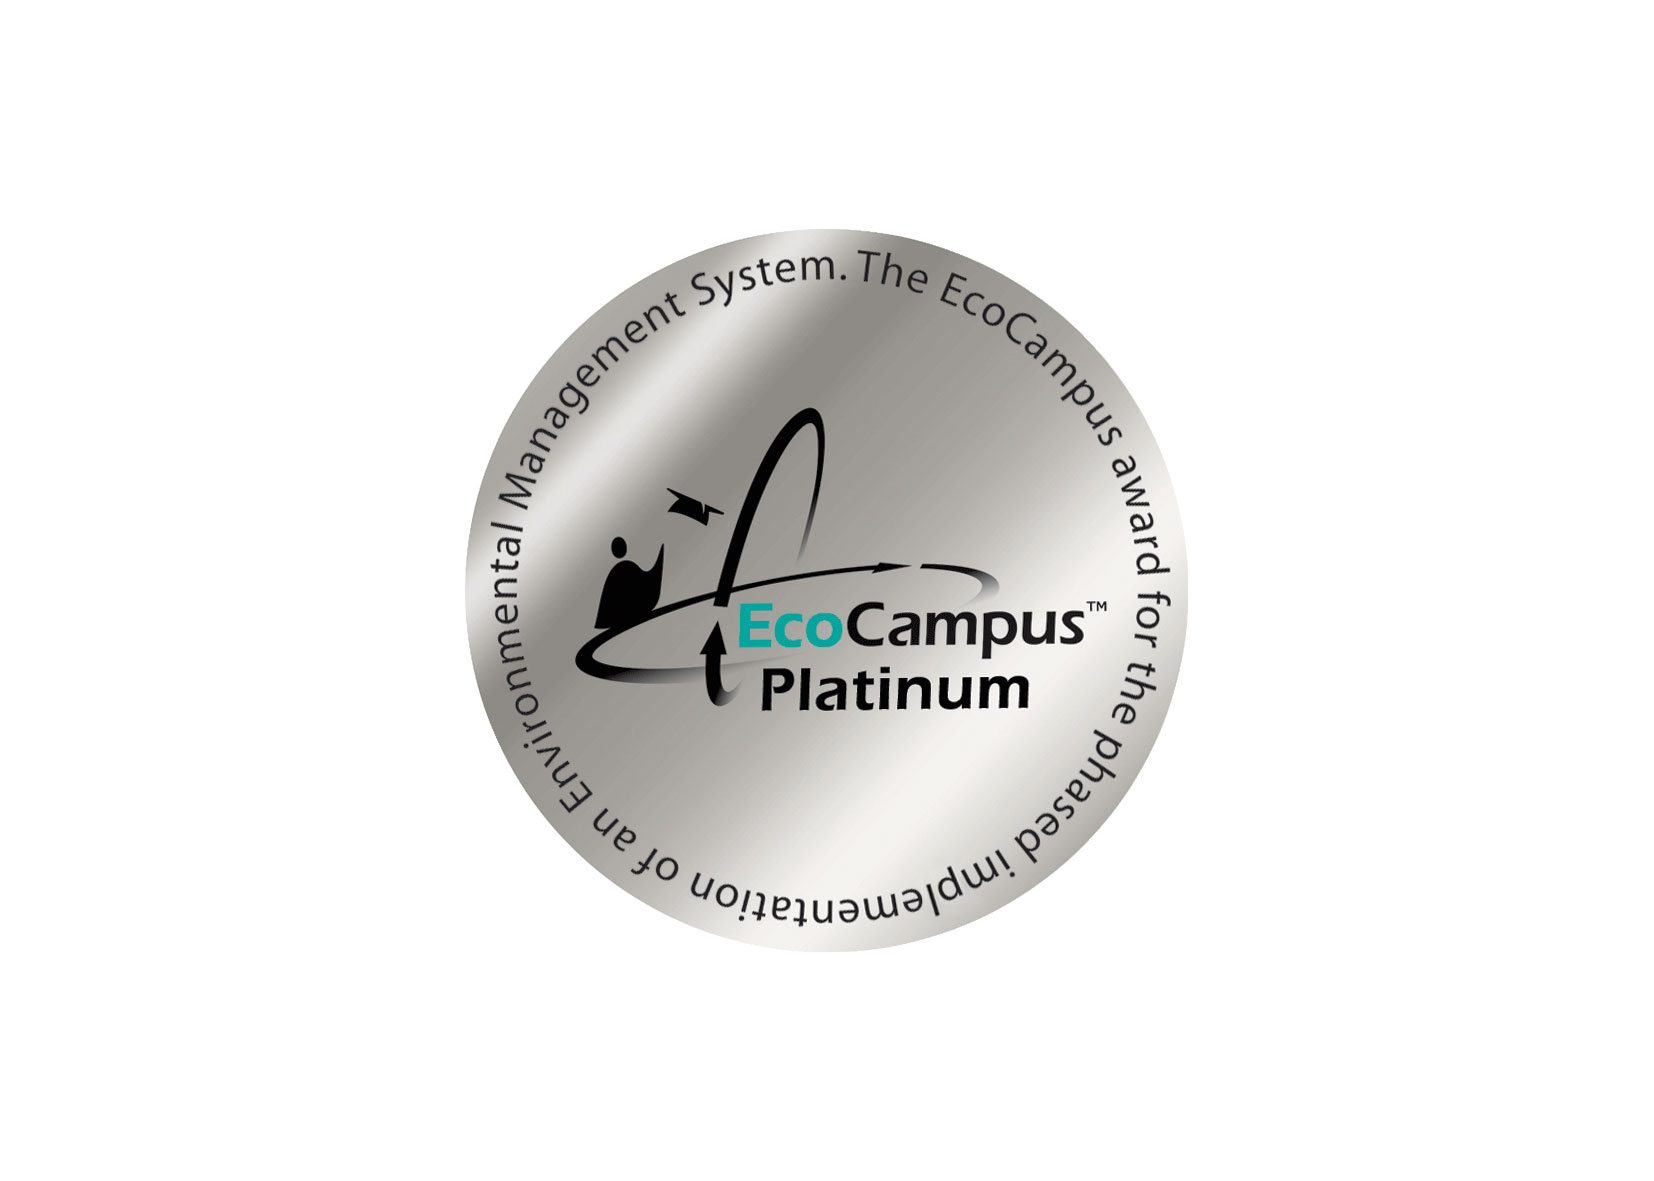 EcoCampus Platinum Award